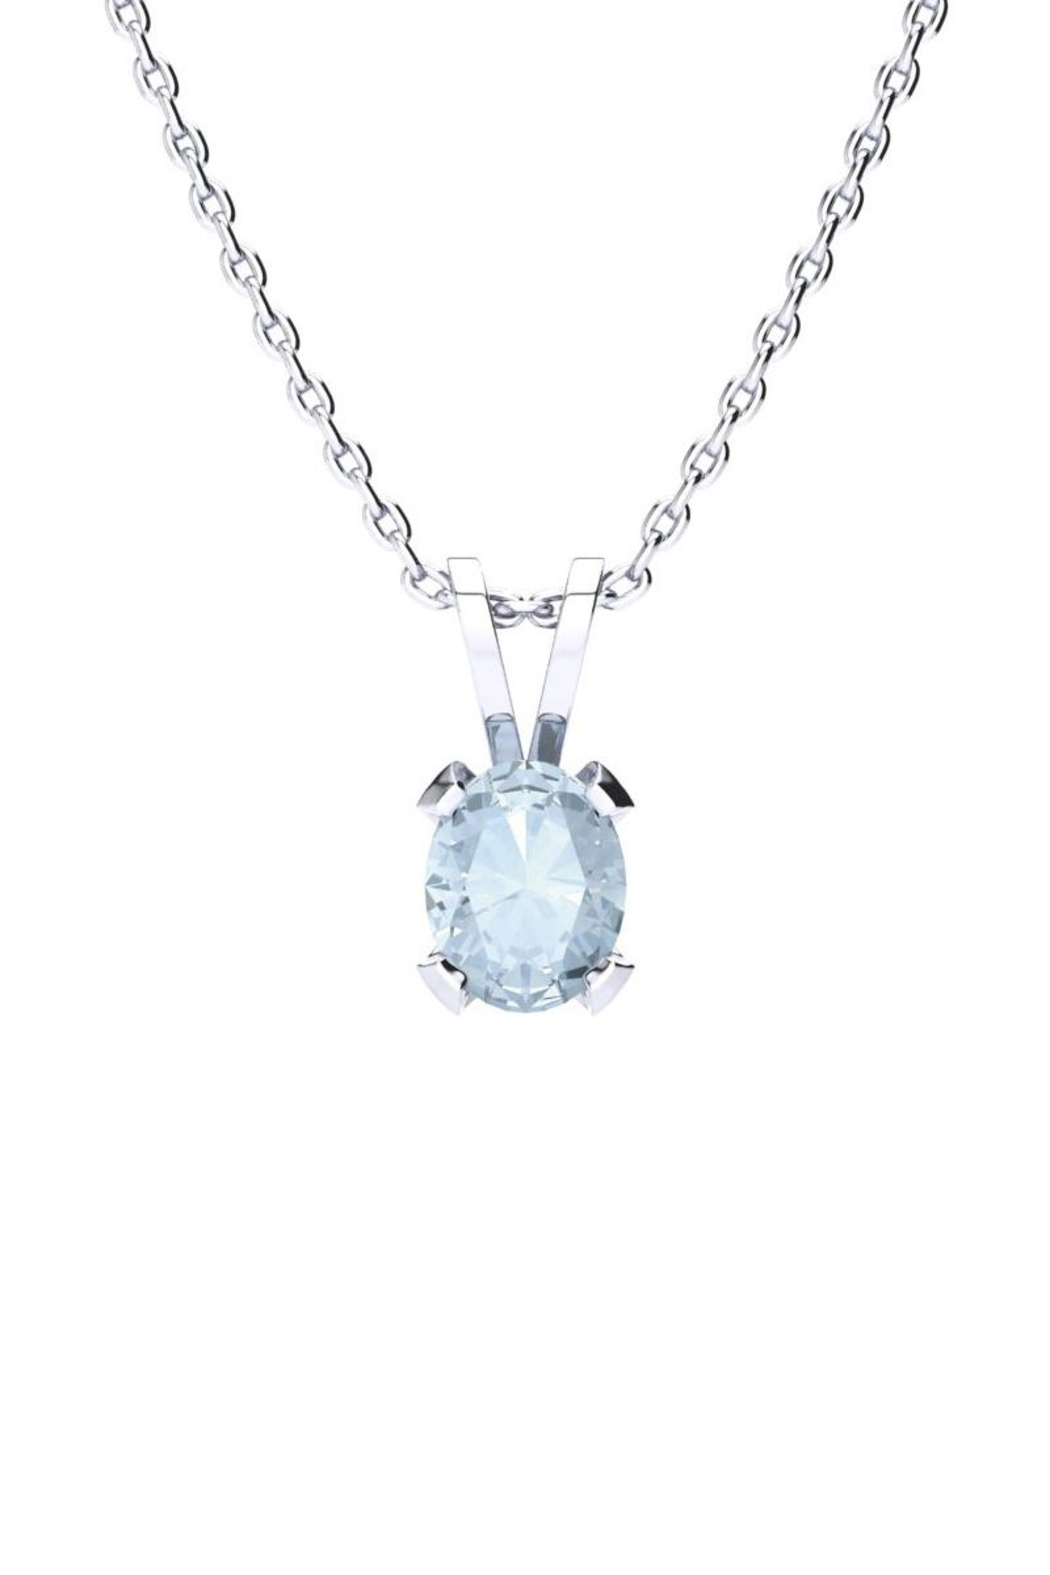 silver cabochon rrp stock pendant marine one the aqua products price off nzd aquamarine our with cambridge